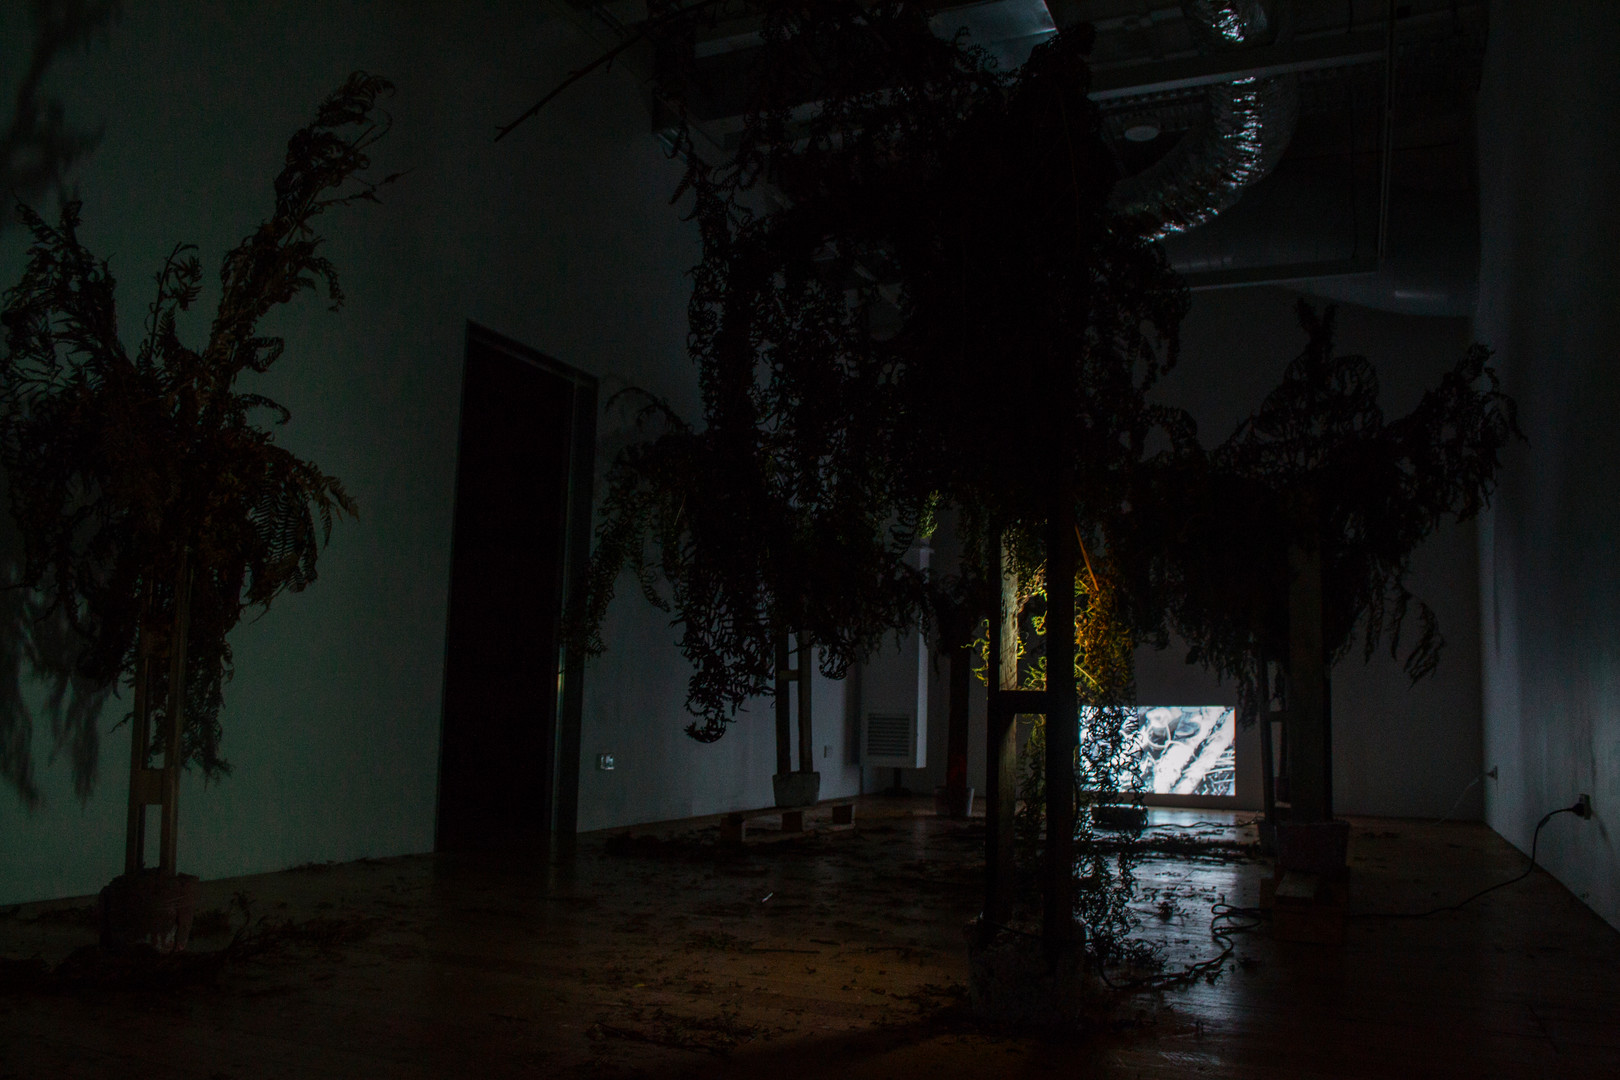 Nuclear Deforestation (Movement I), Survival of the Cyatheales, 2019